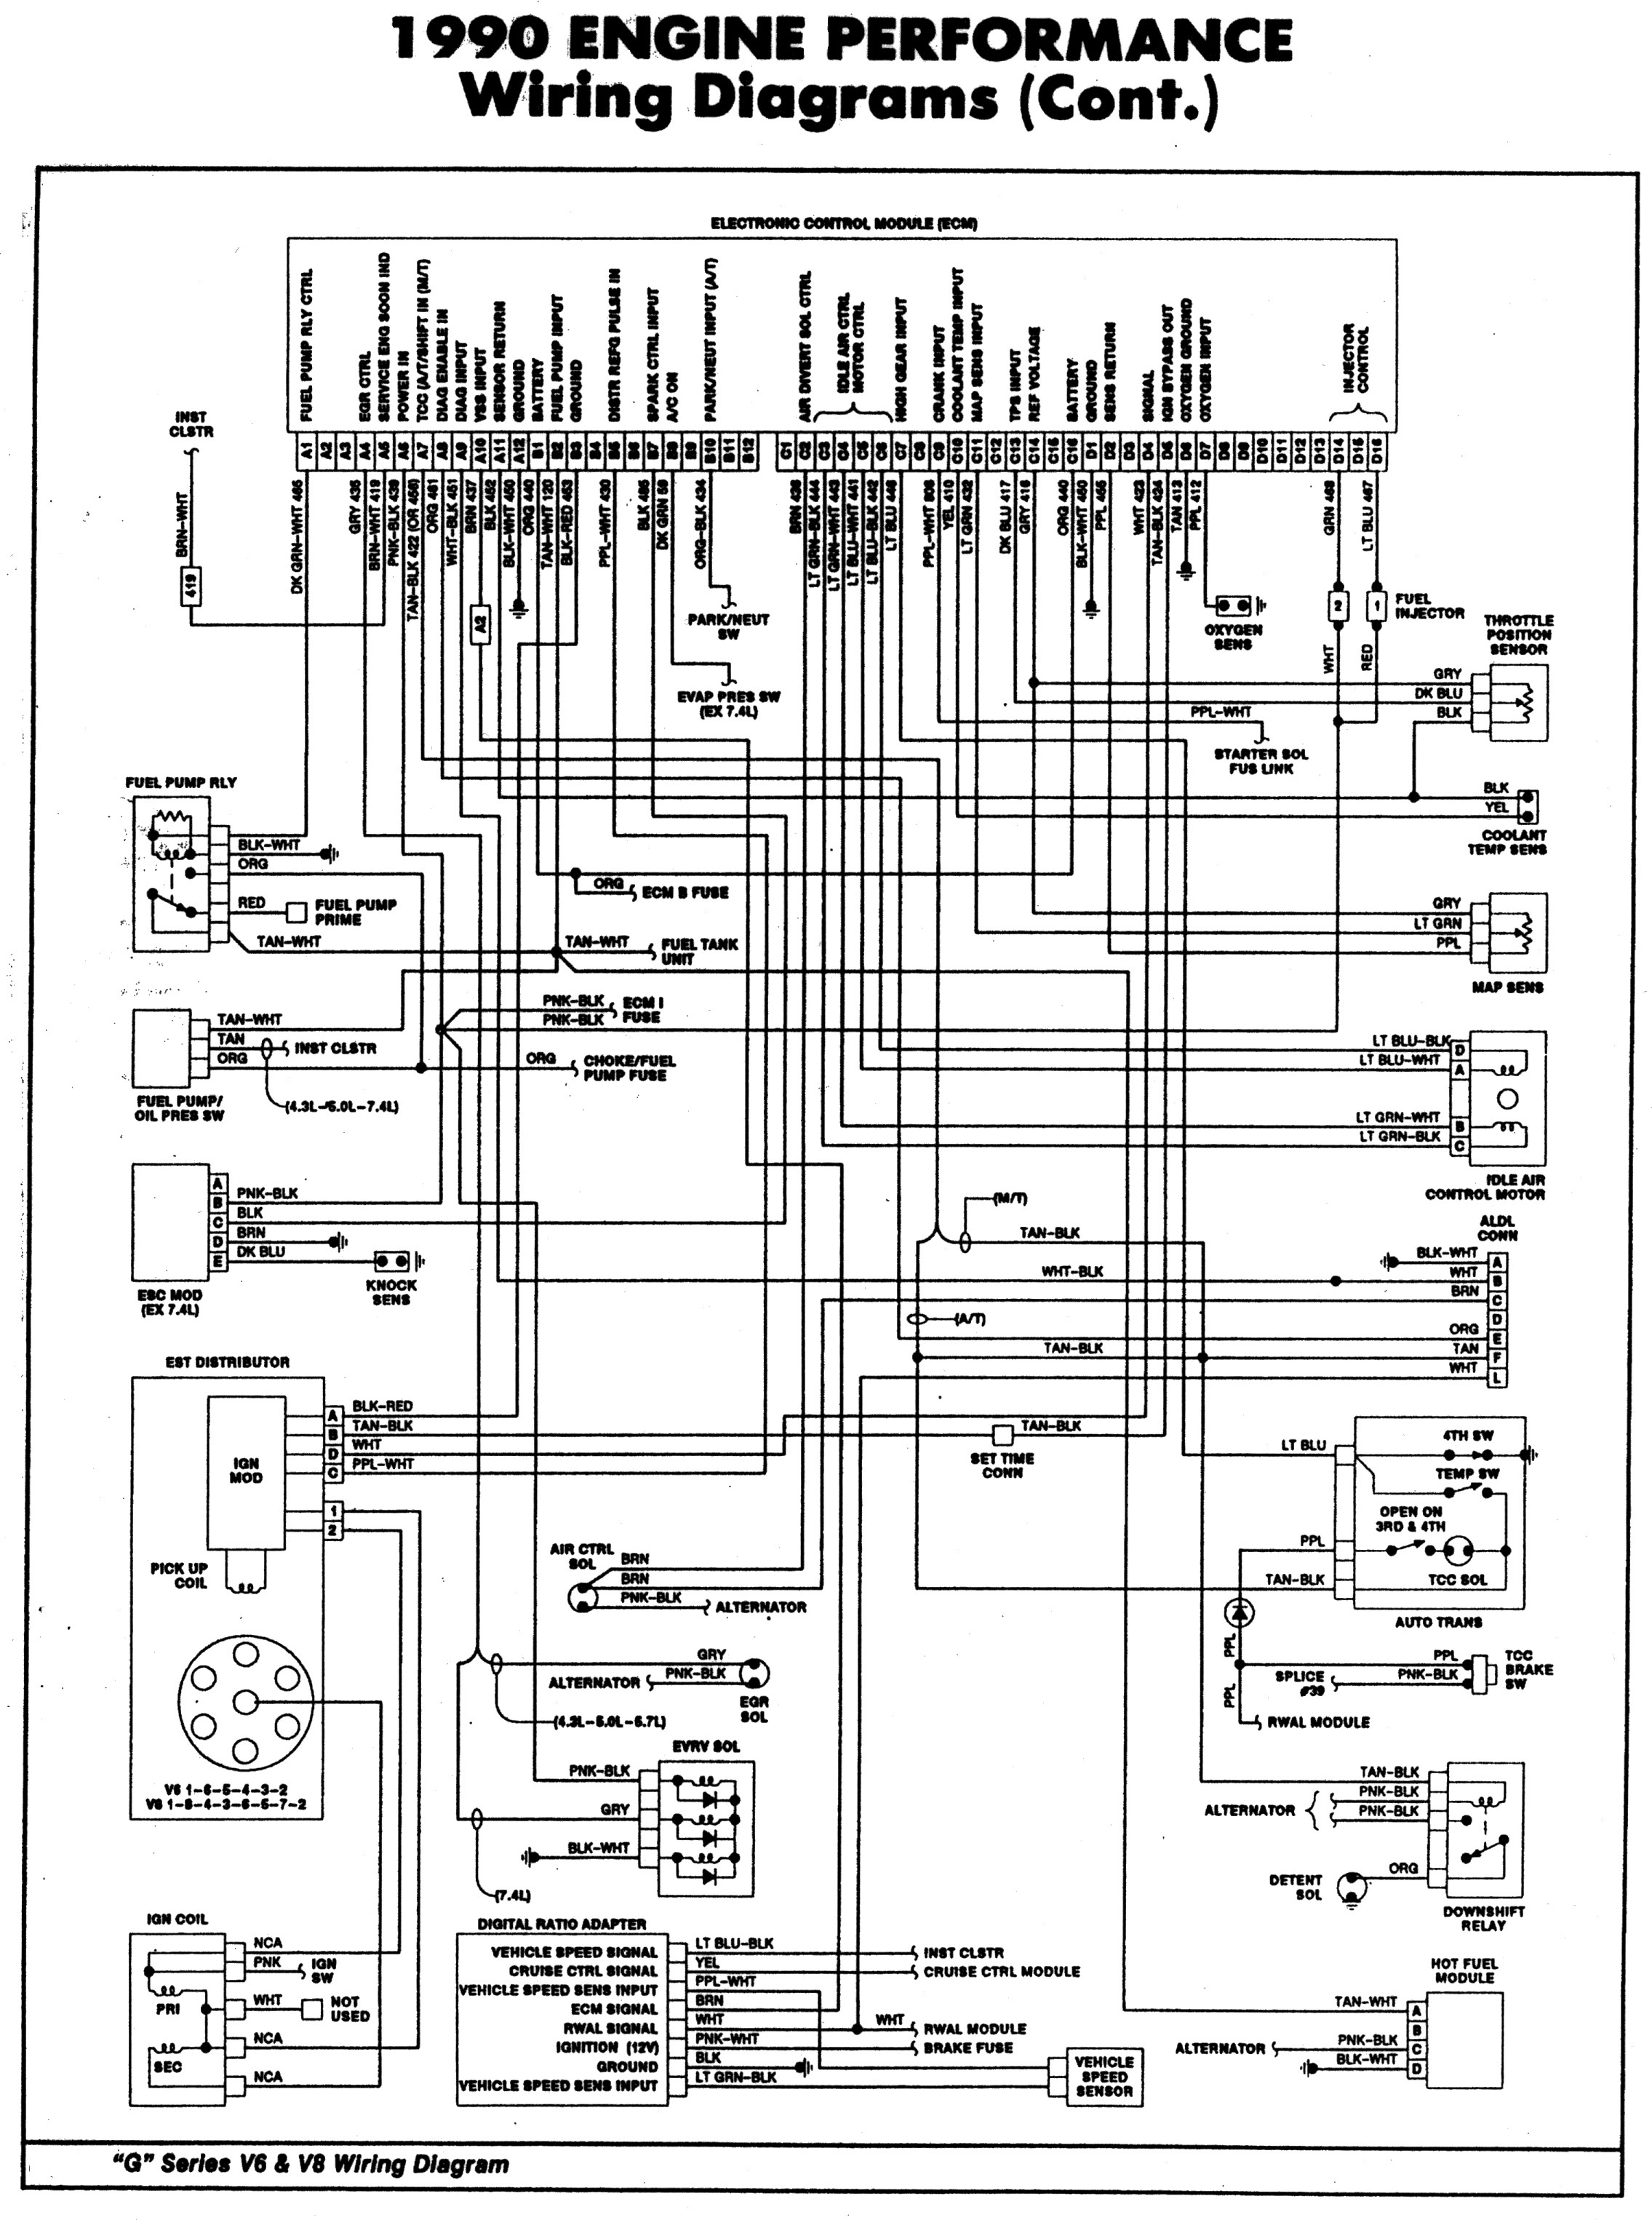 hight resolution of land cruiser sel wiring diagram data schematic diagramland cruiser sel wiring diagram wiring diagram ignitiondiagram 1990